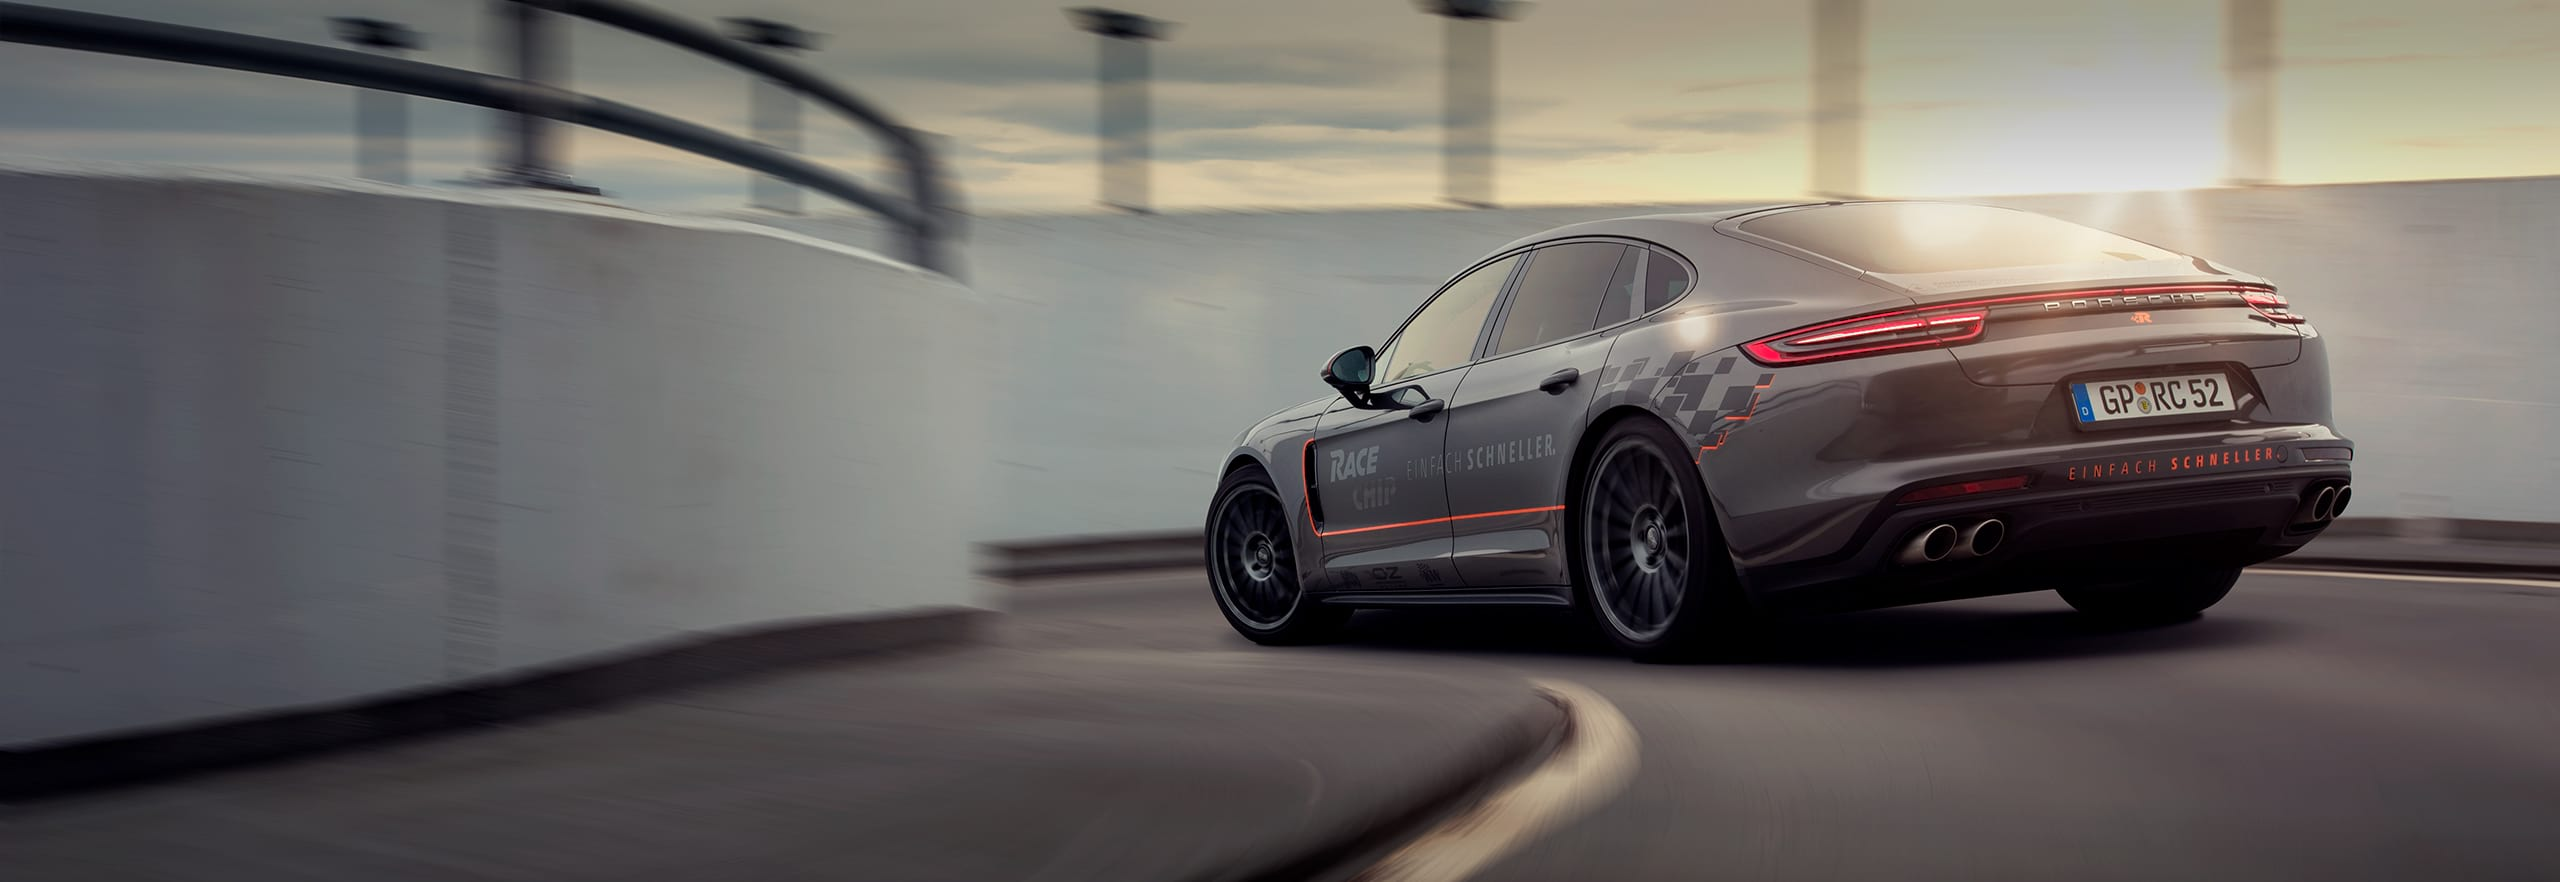 Porsche Chip Tuning - Performance Chip by RaceChip